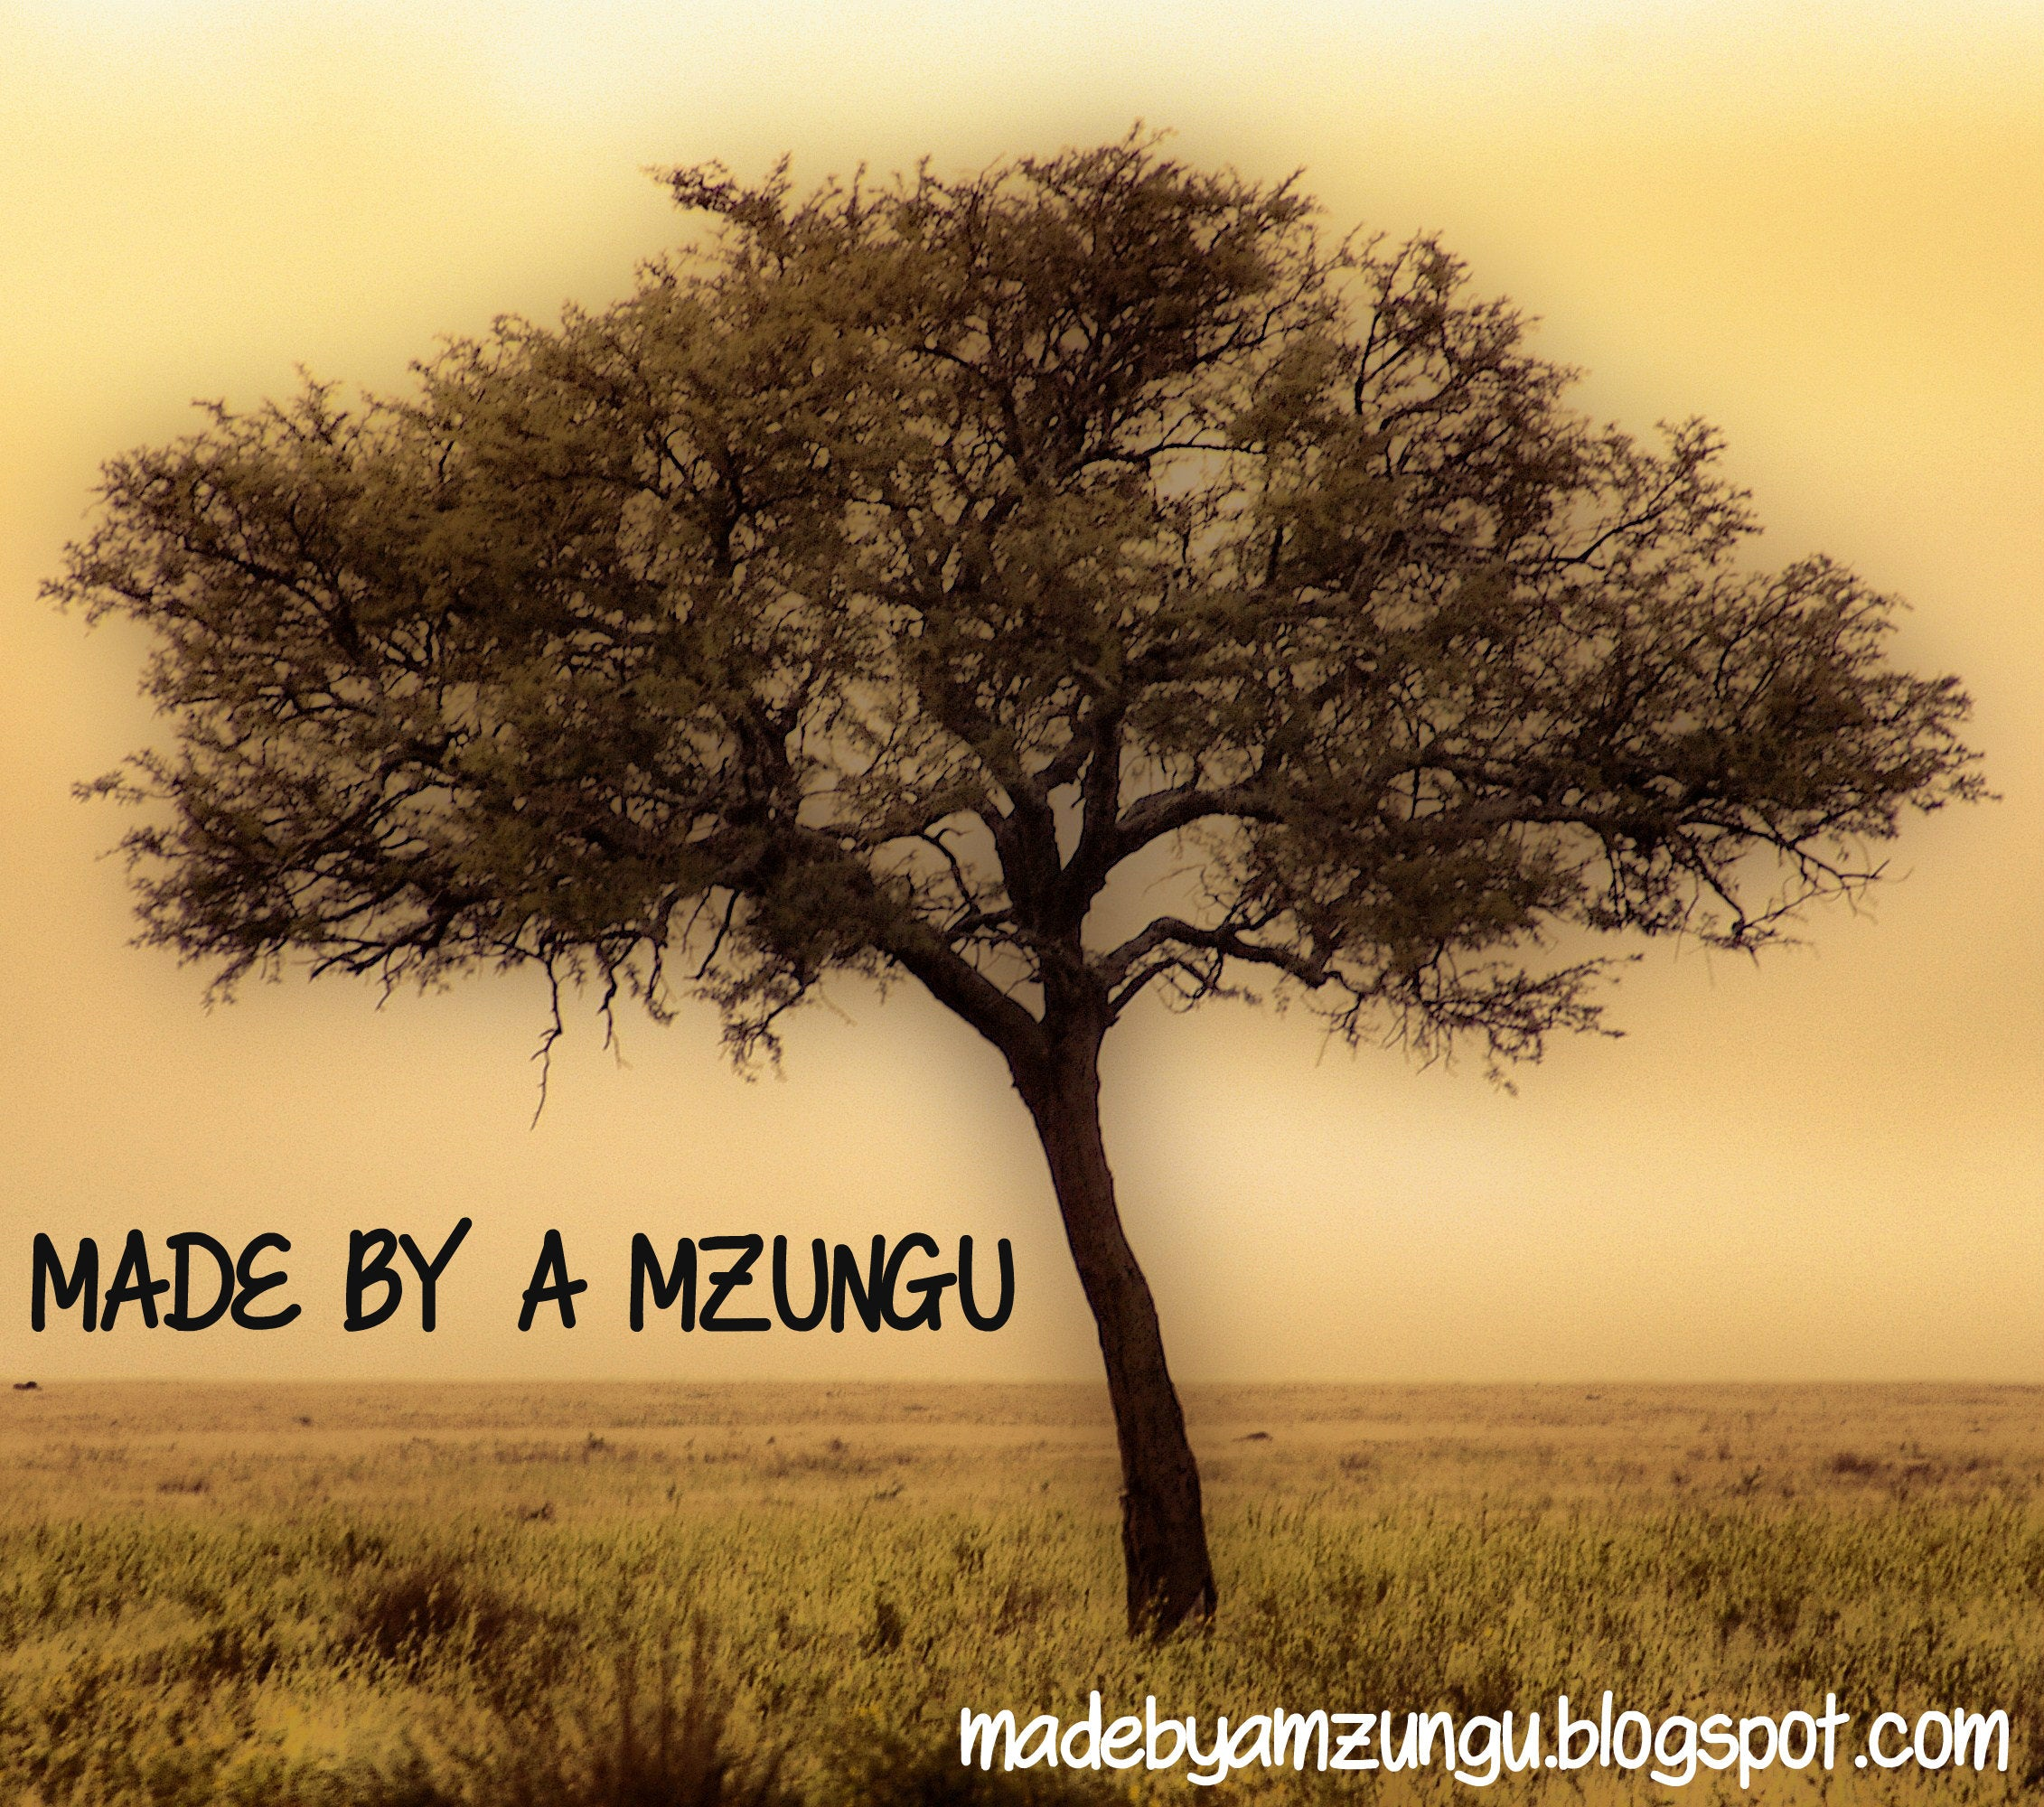 Made by a Mzungu